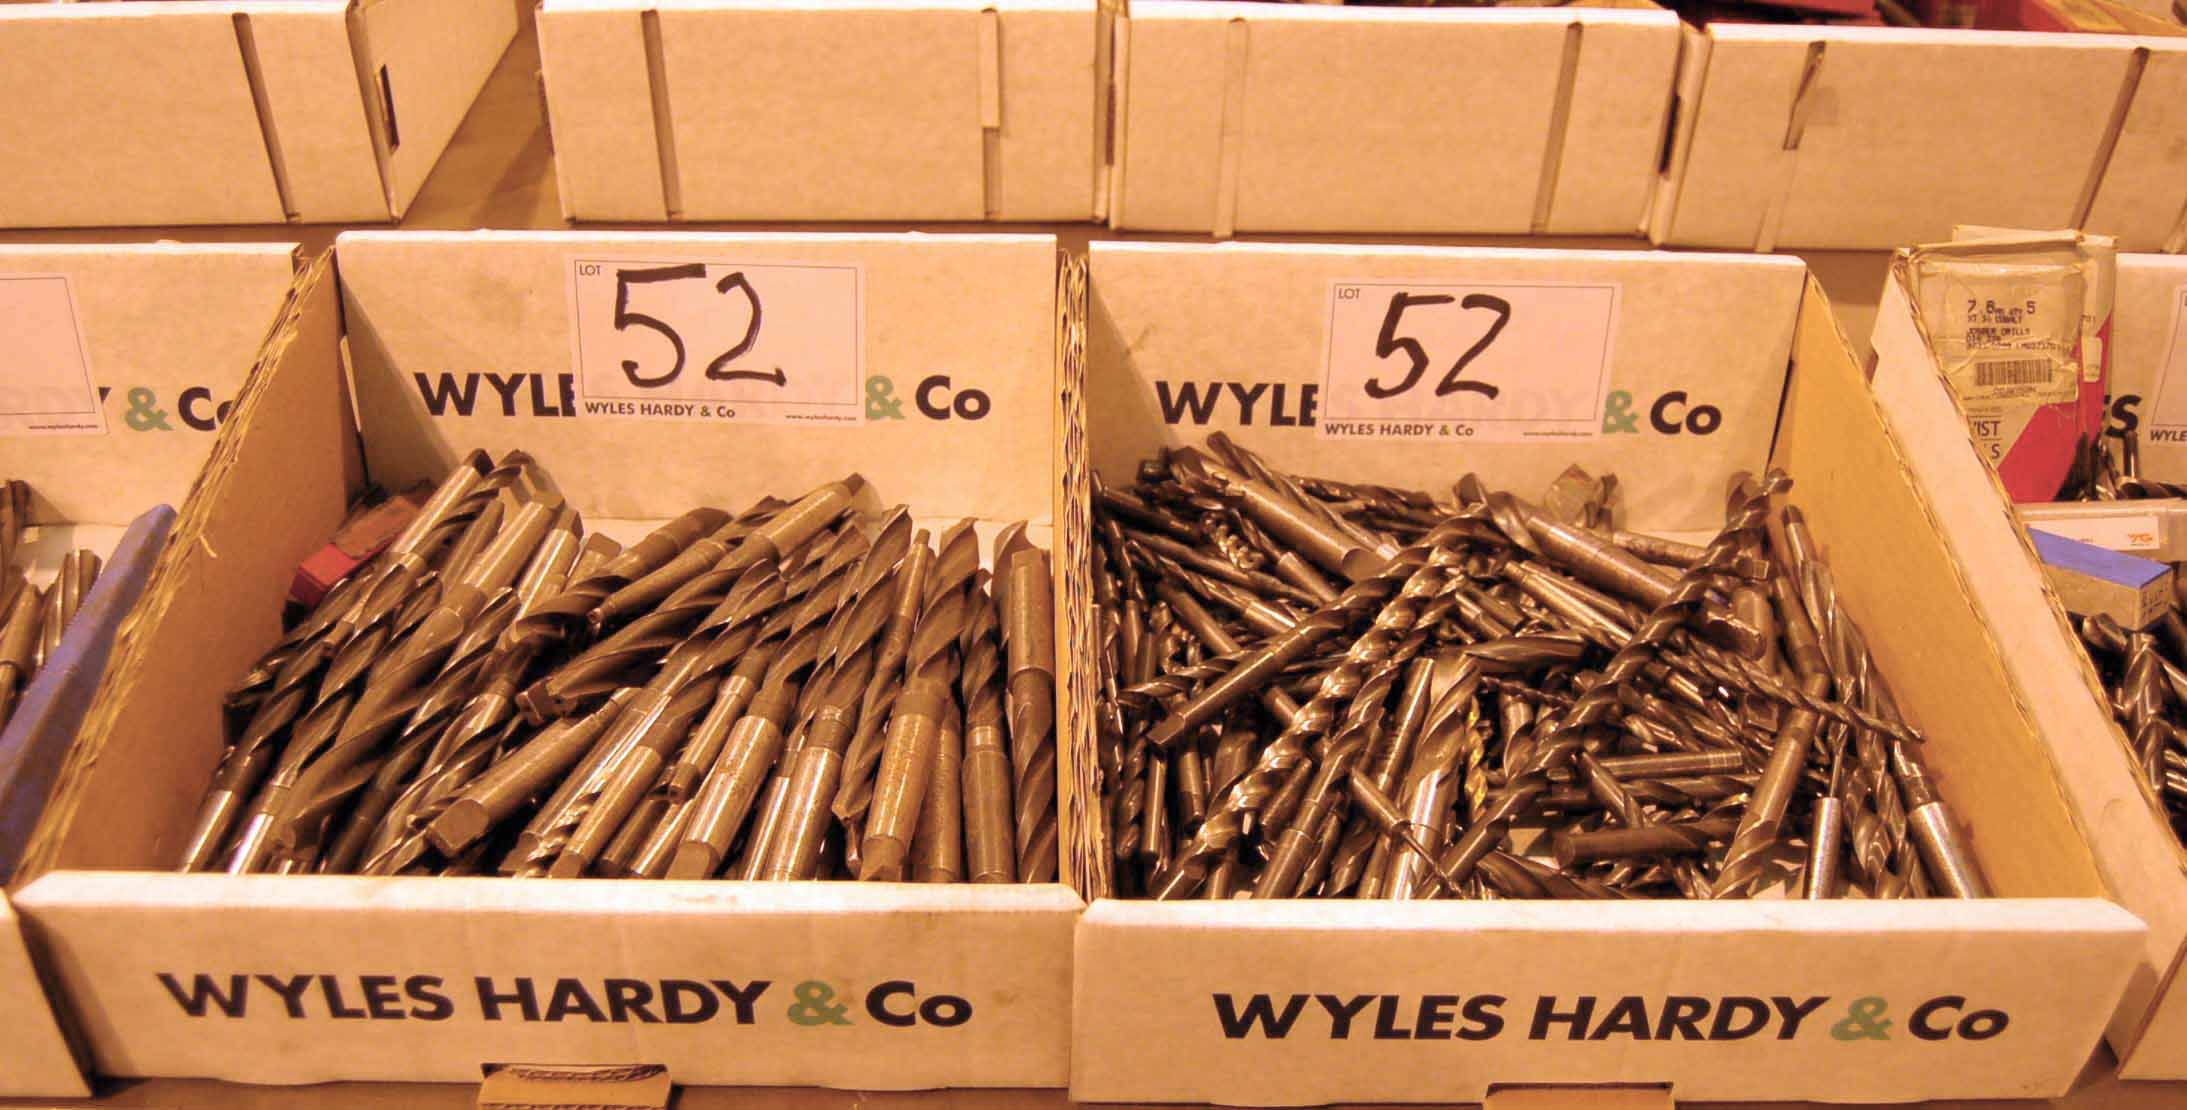 Lot 52 - Two Boxes of Tapered Shank HSS Drill Bits (As Photographed)